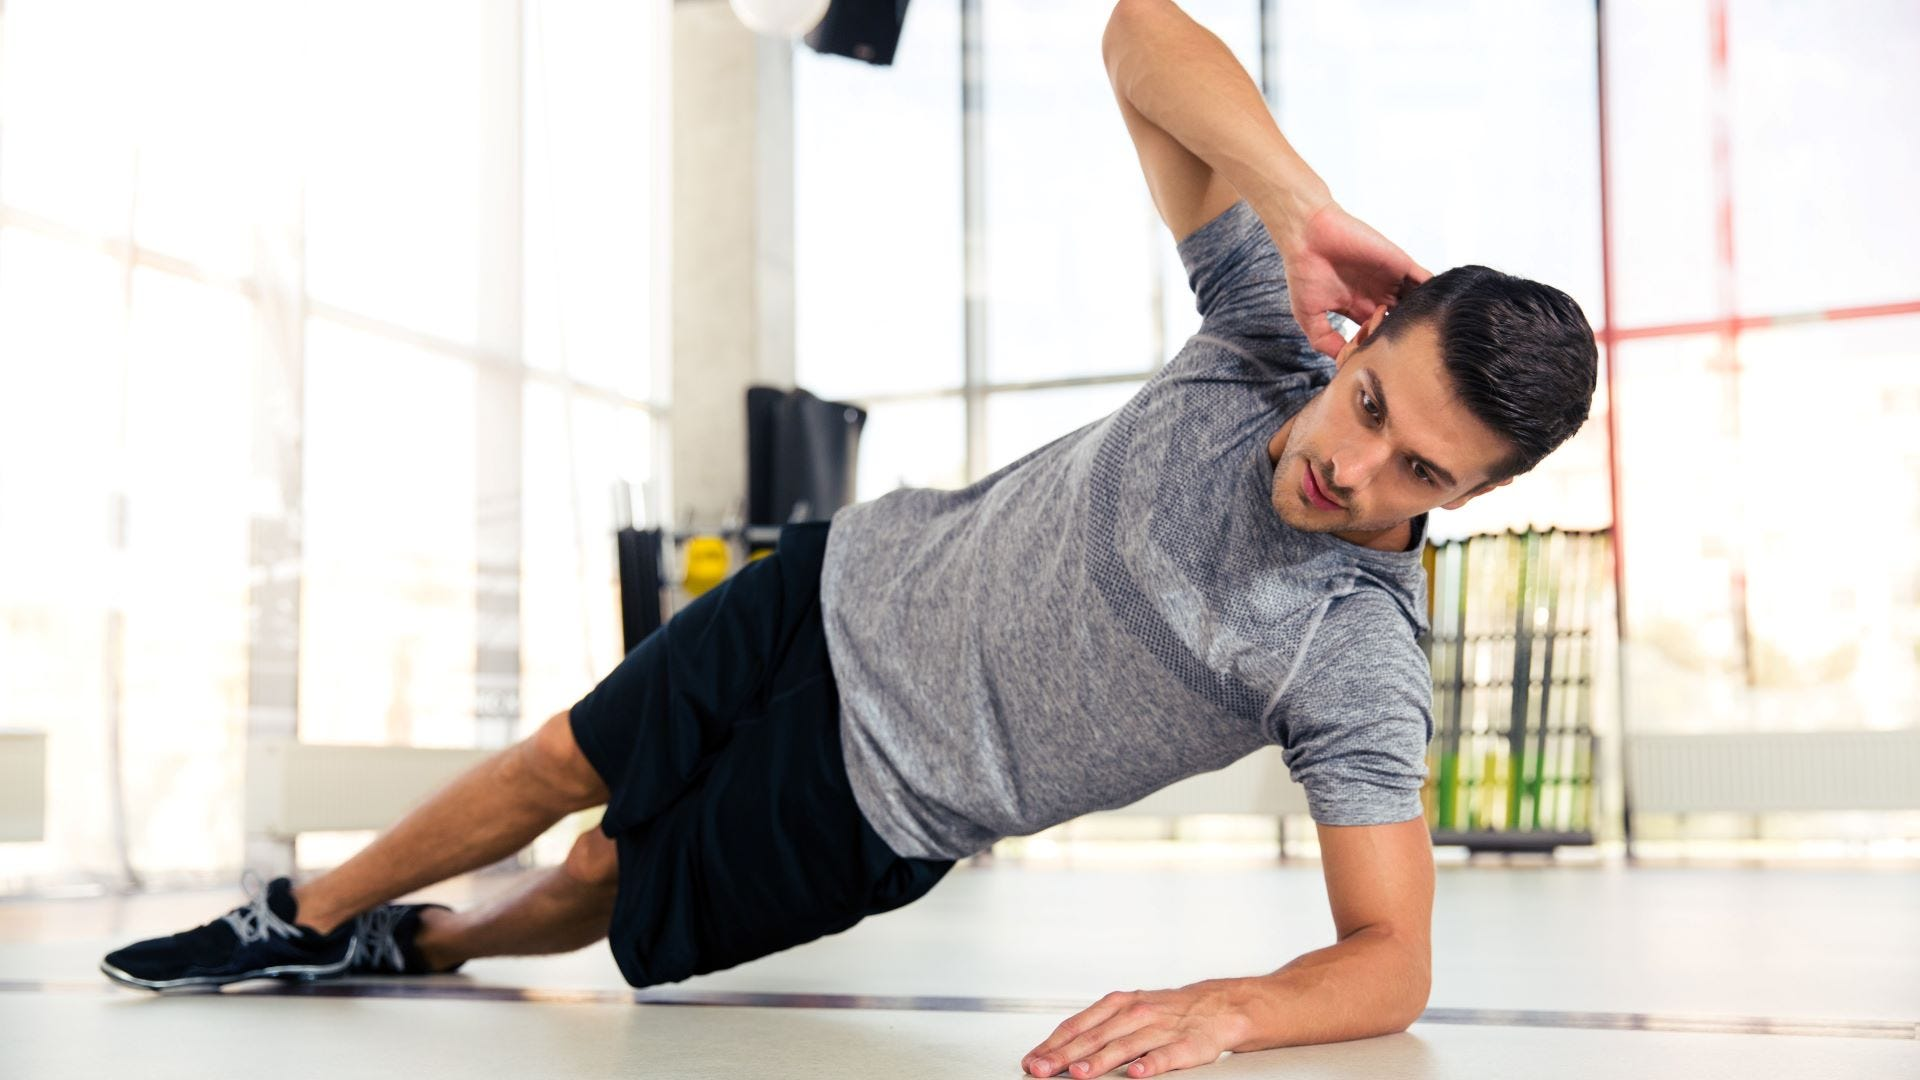 A man doing the side plank yoga pose.